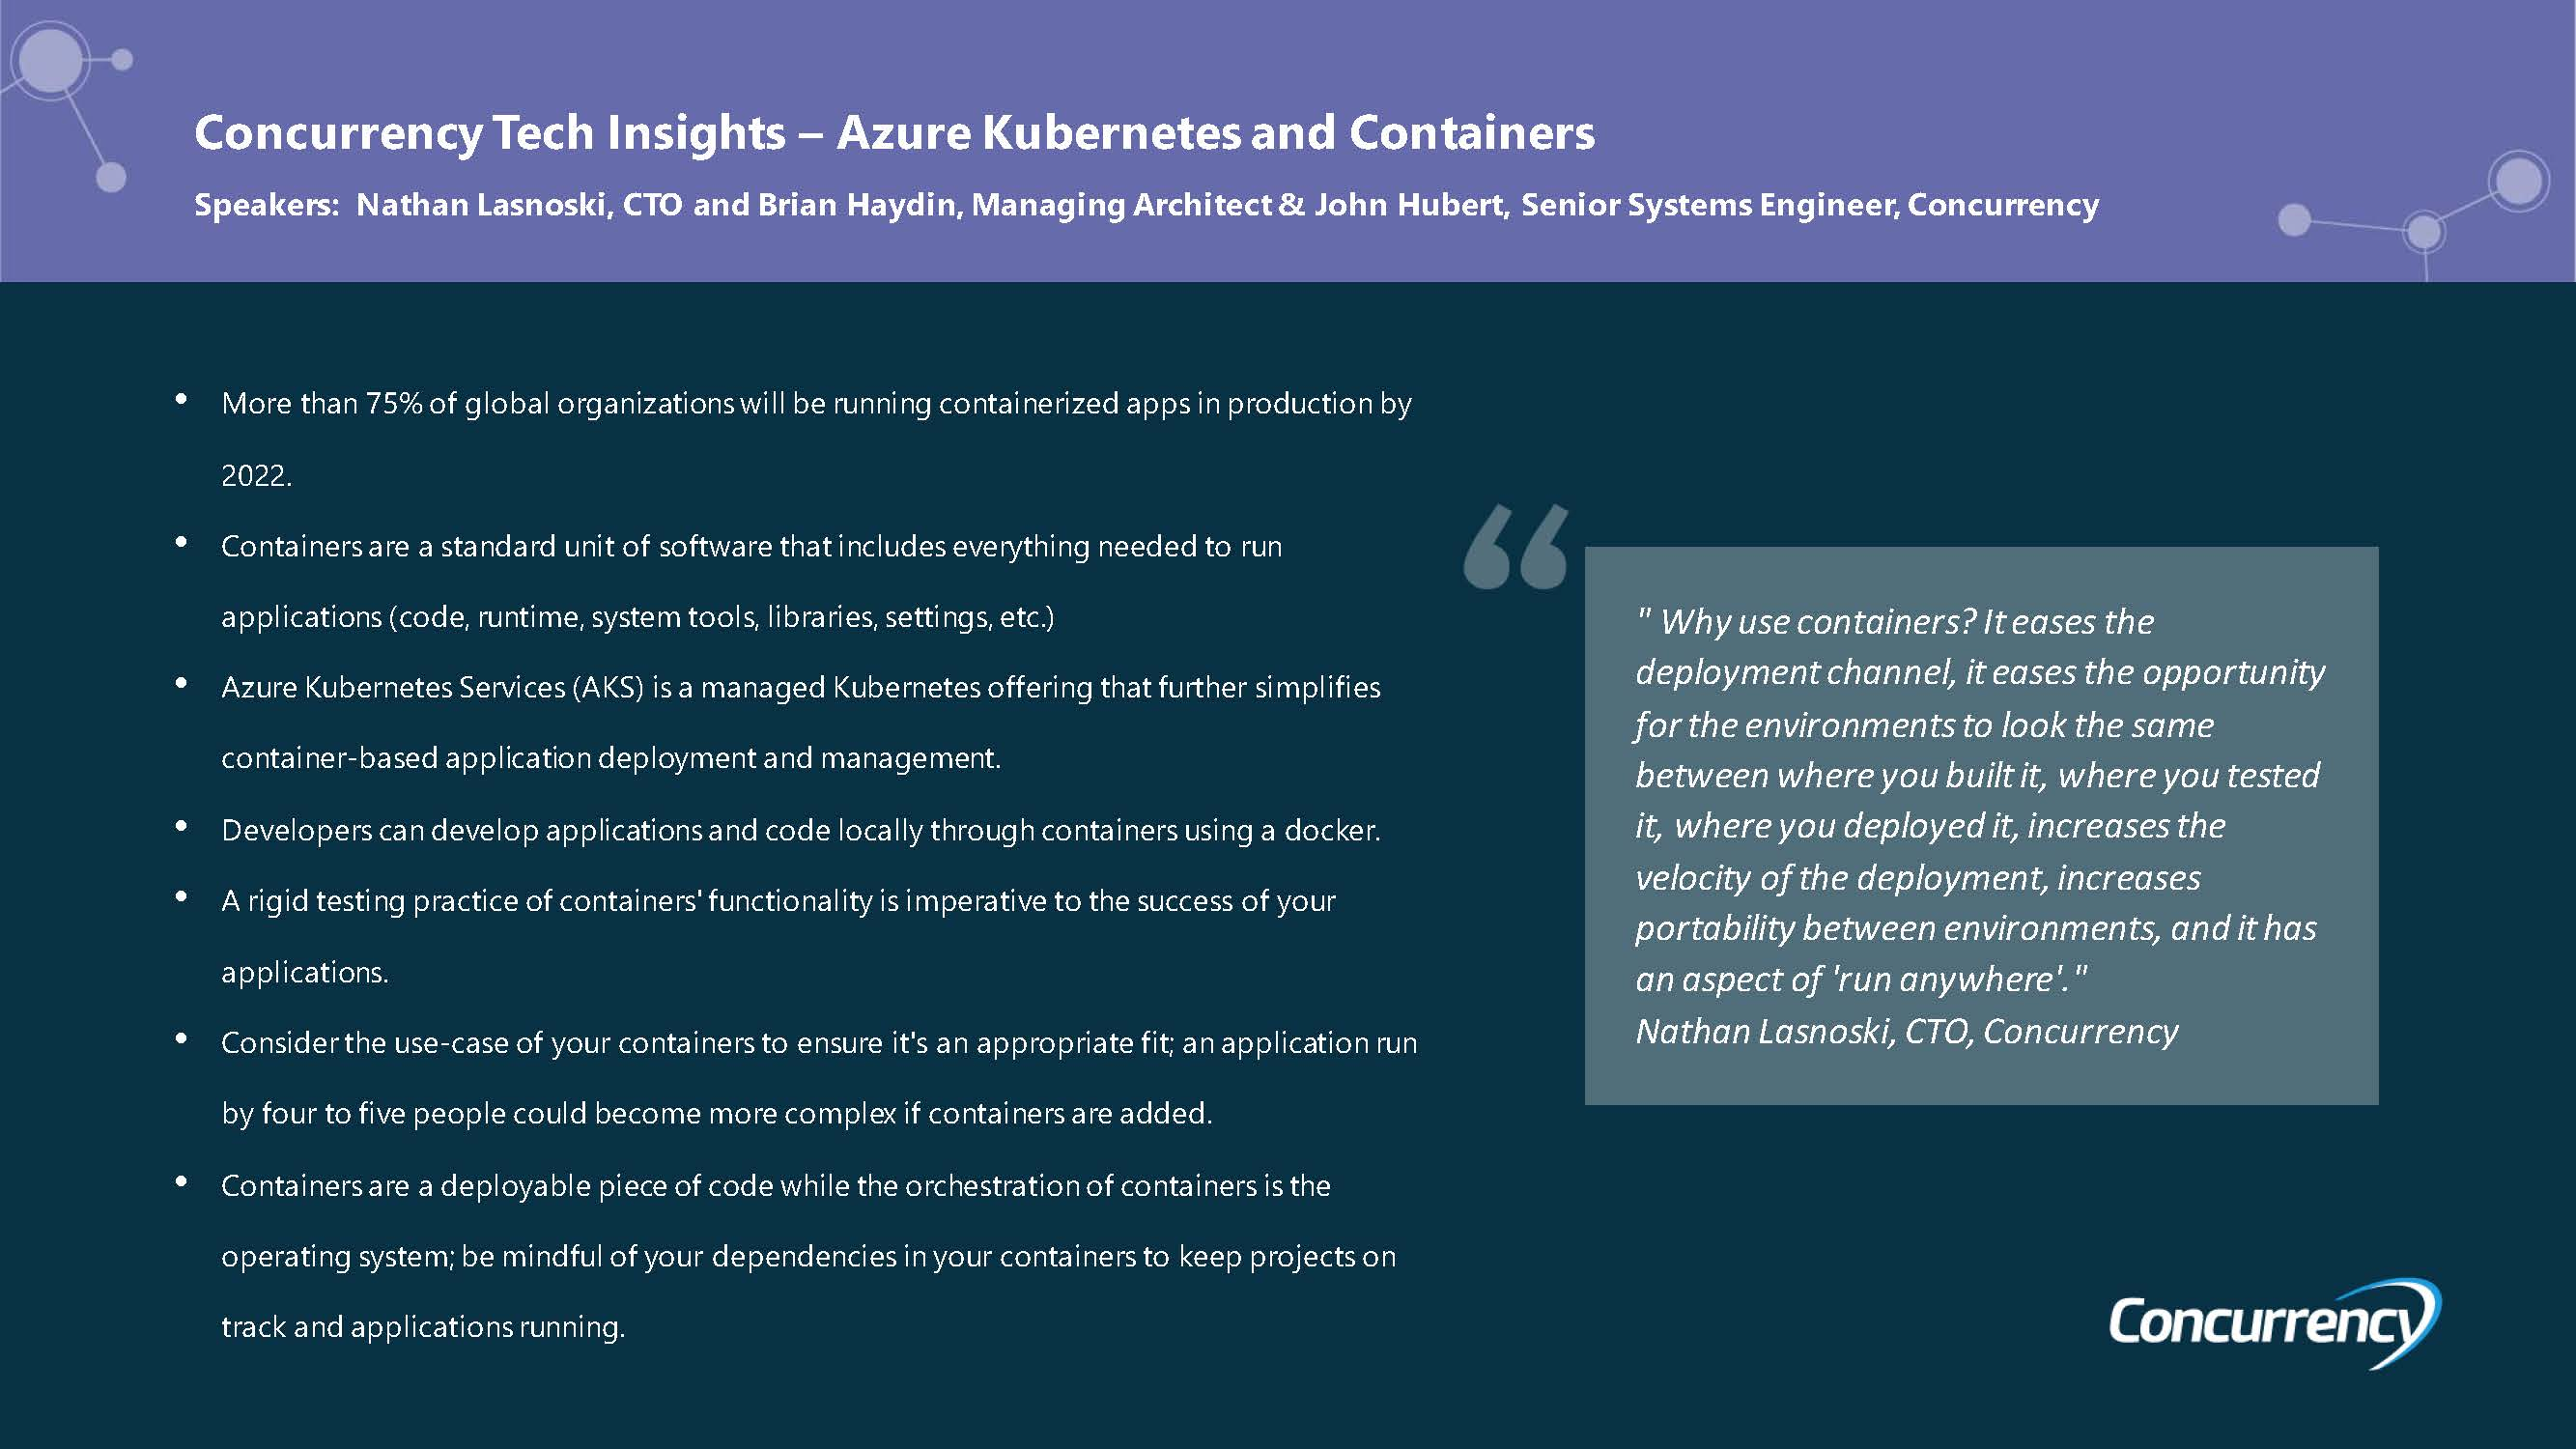 CNCY_Tech_Insights_Executive_Summary_AzureKubernetesContainers.jpg